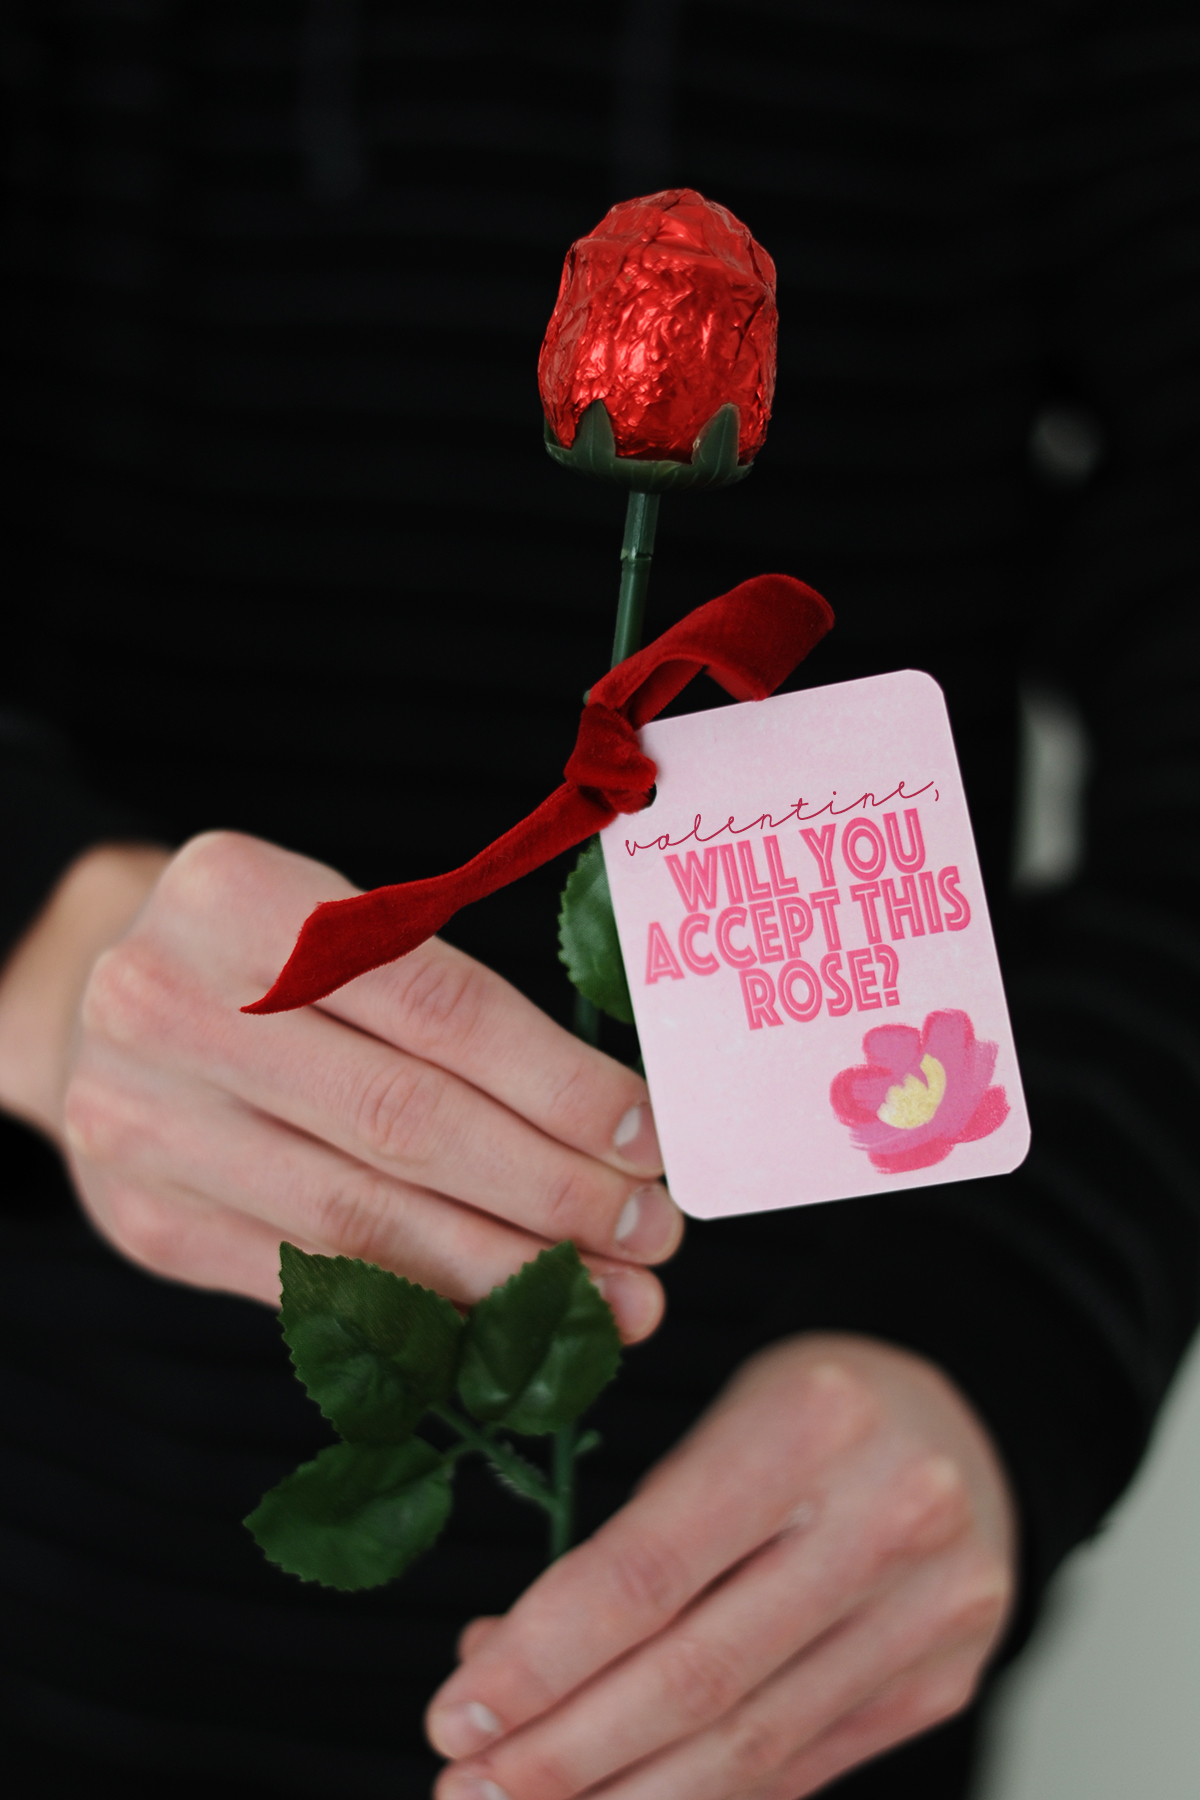 Valentine will you accept this rose